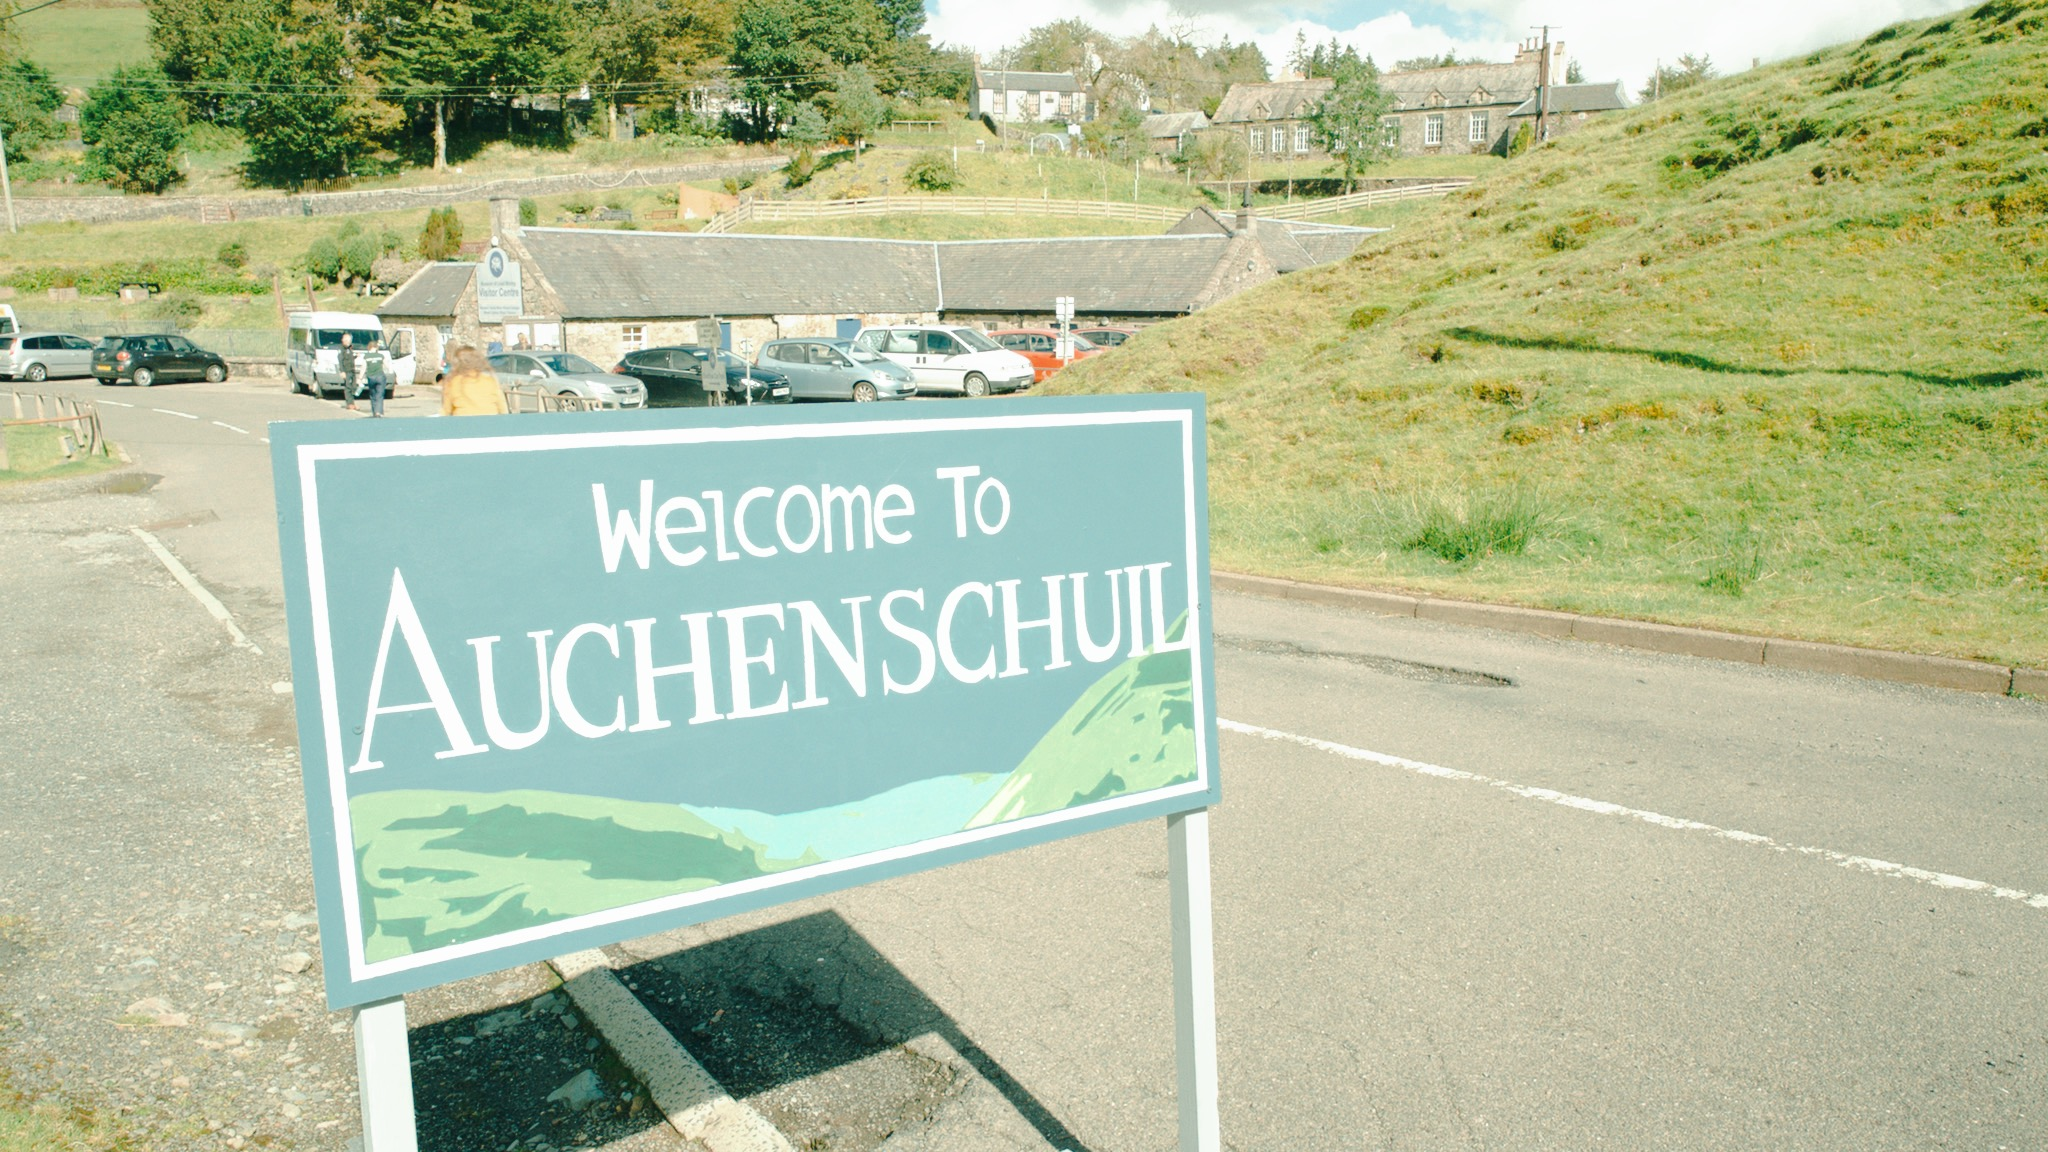 Welcome to Auchenschuil .jpg